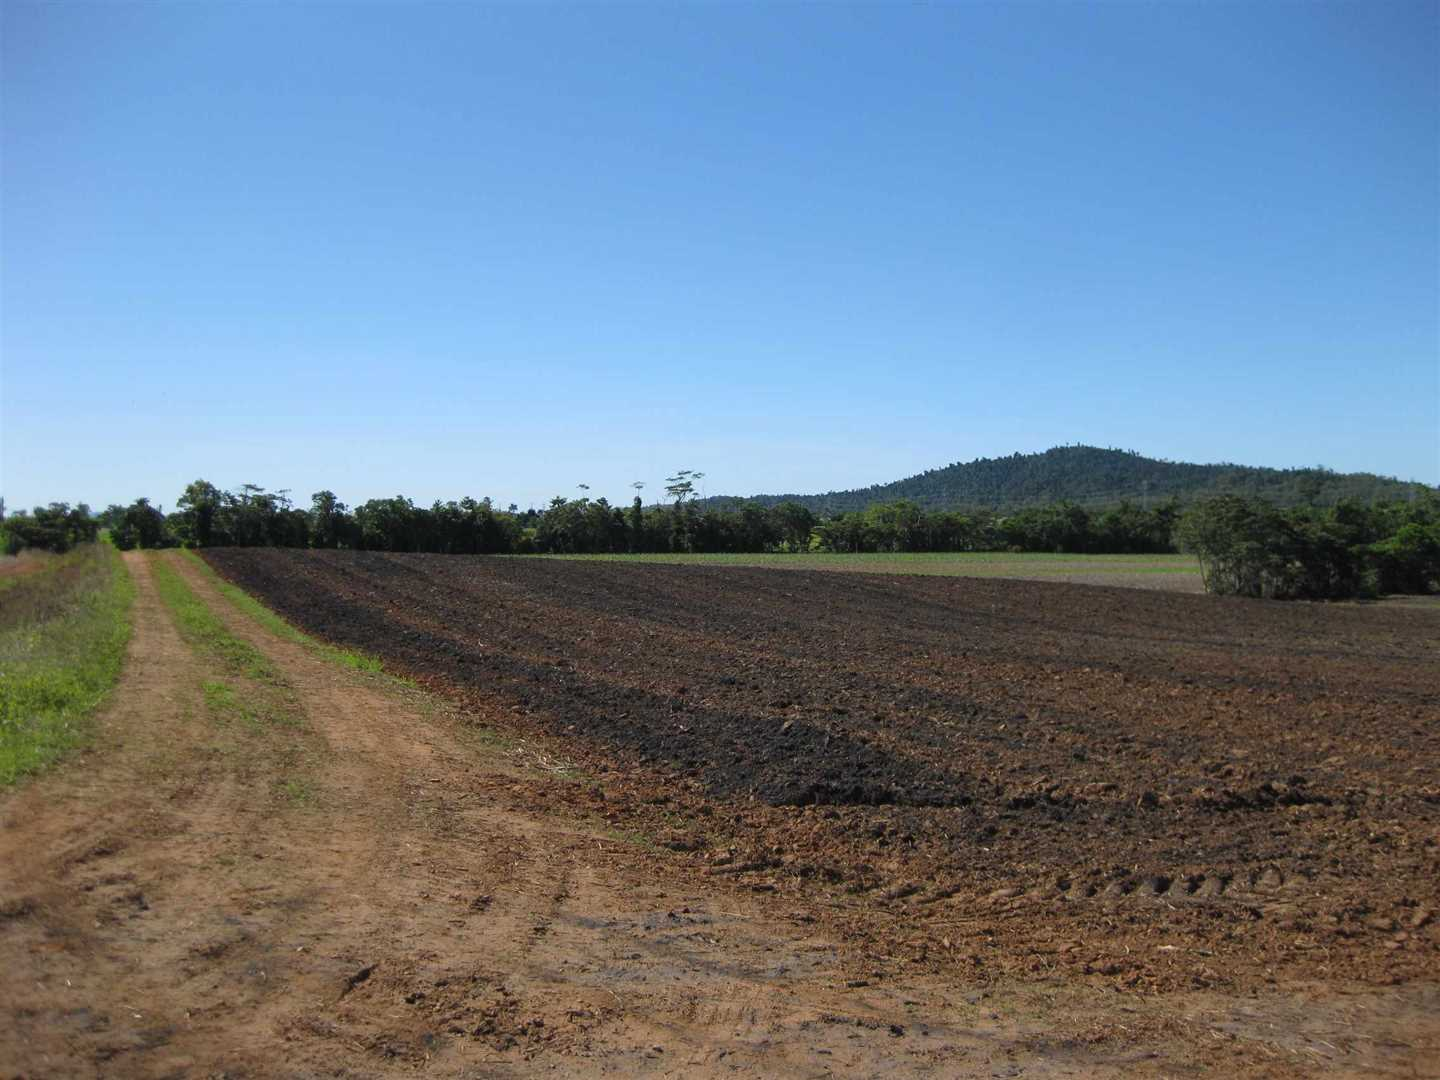 Lot 1, view of part of property when part fallow (now under cane), photo 1